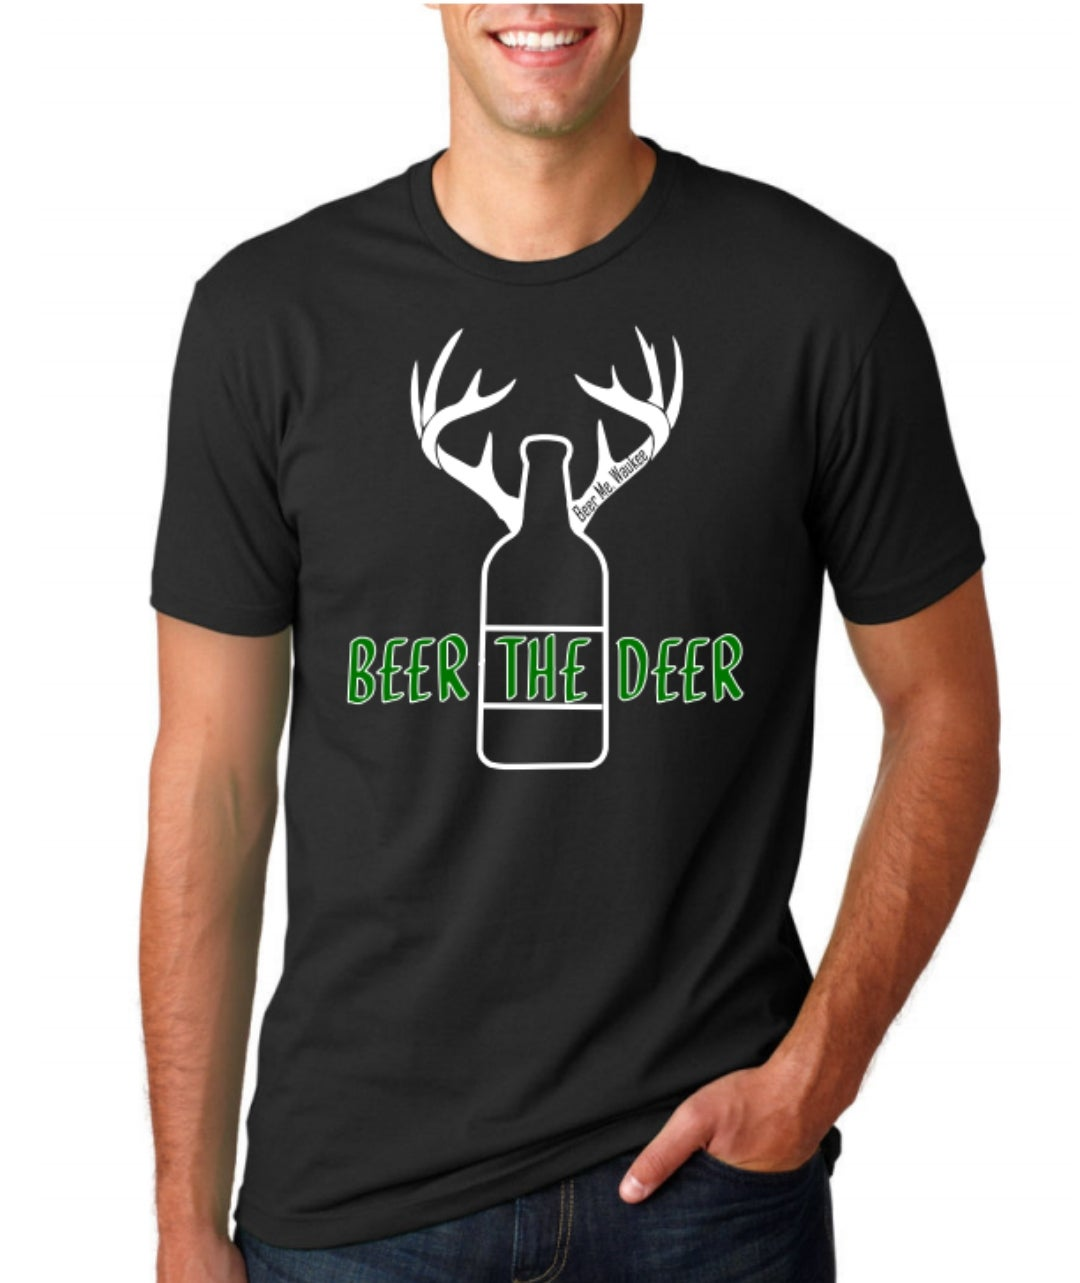 Image of Beer The Deer - Black Tee